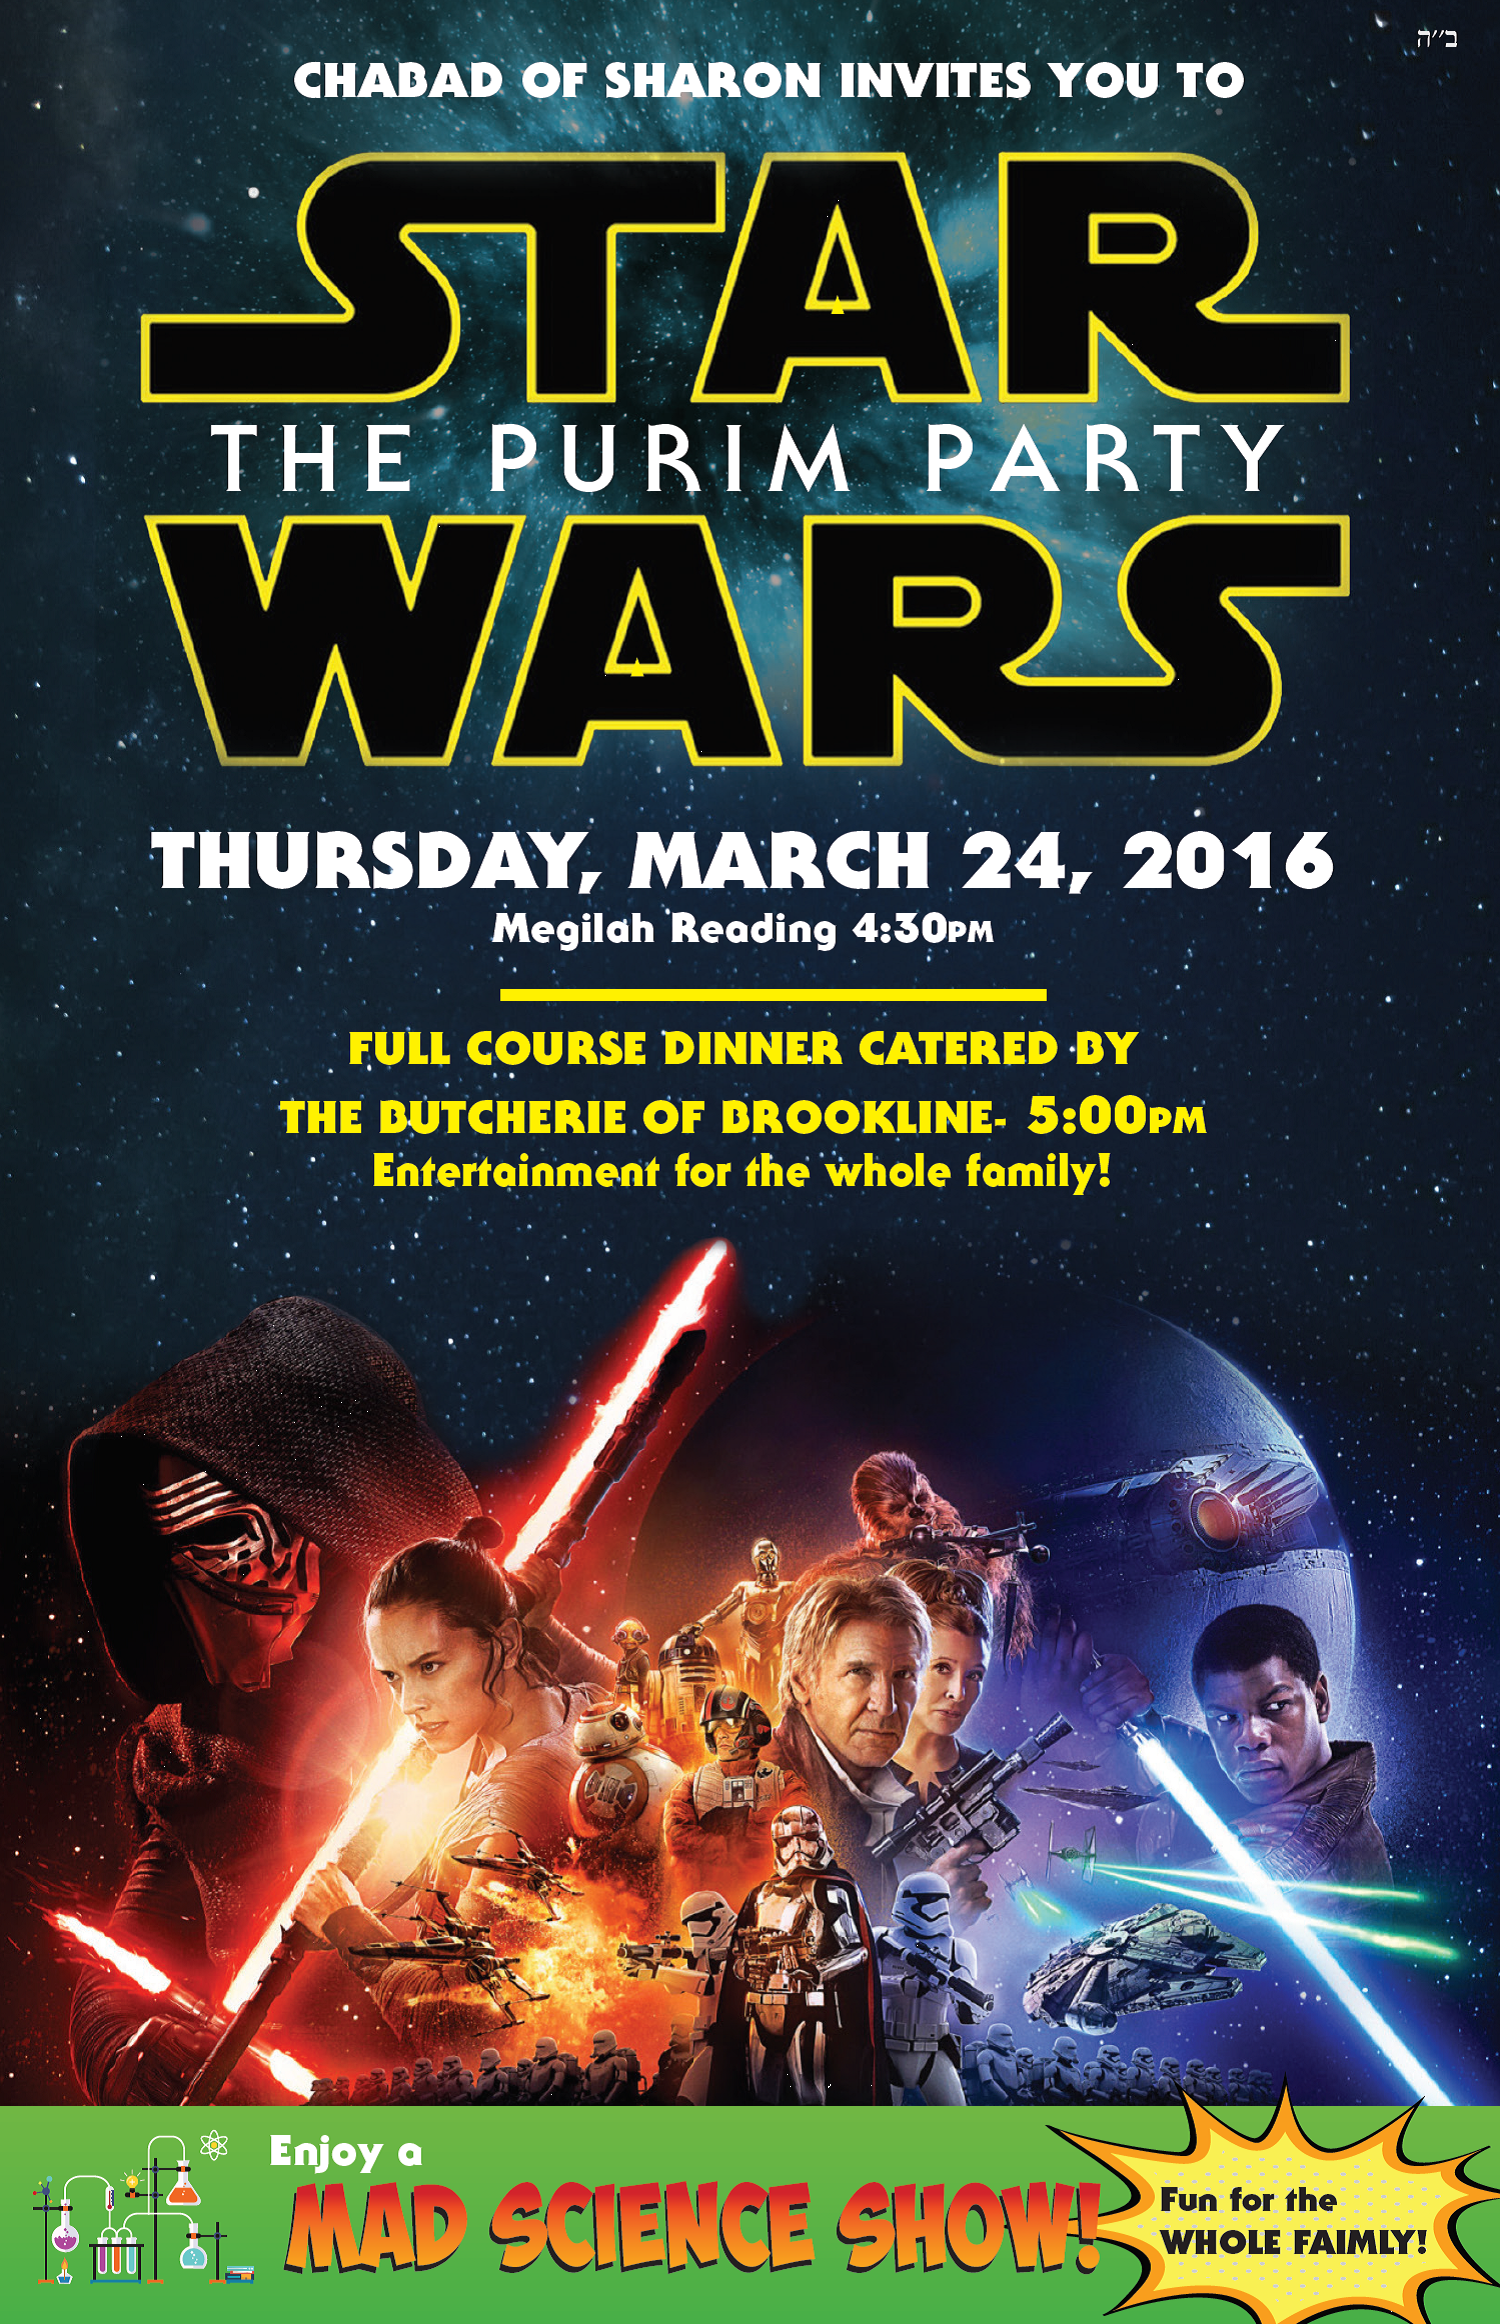 Star wars Purim flyer 2016.png